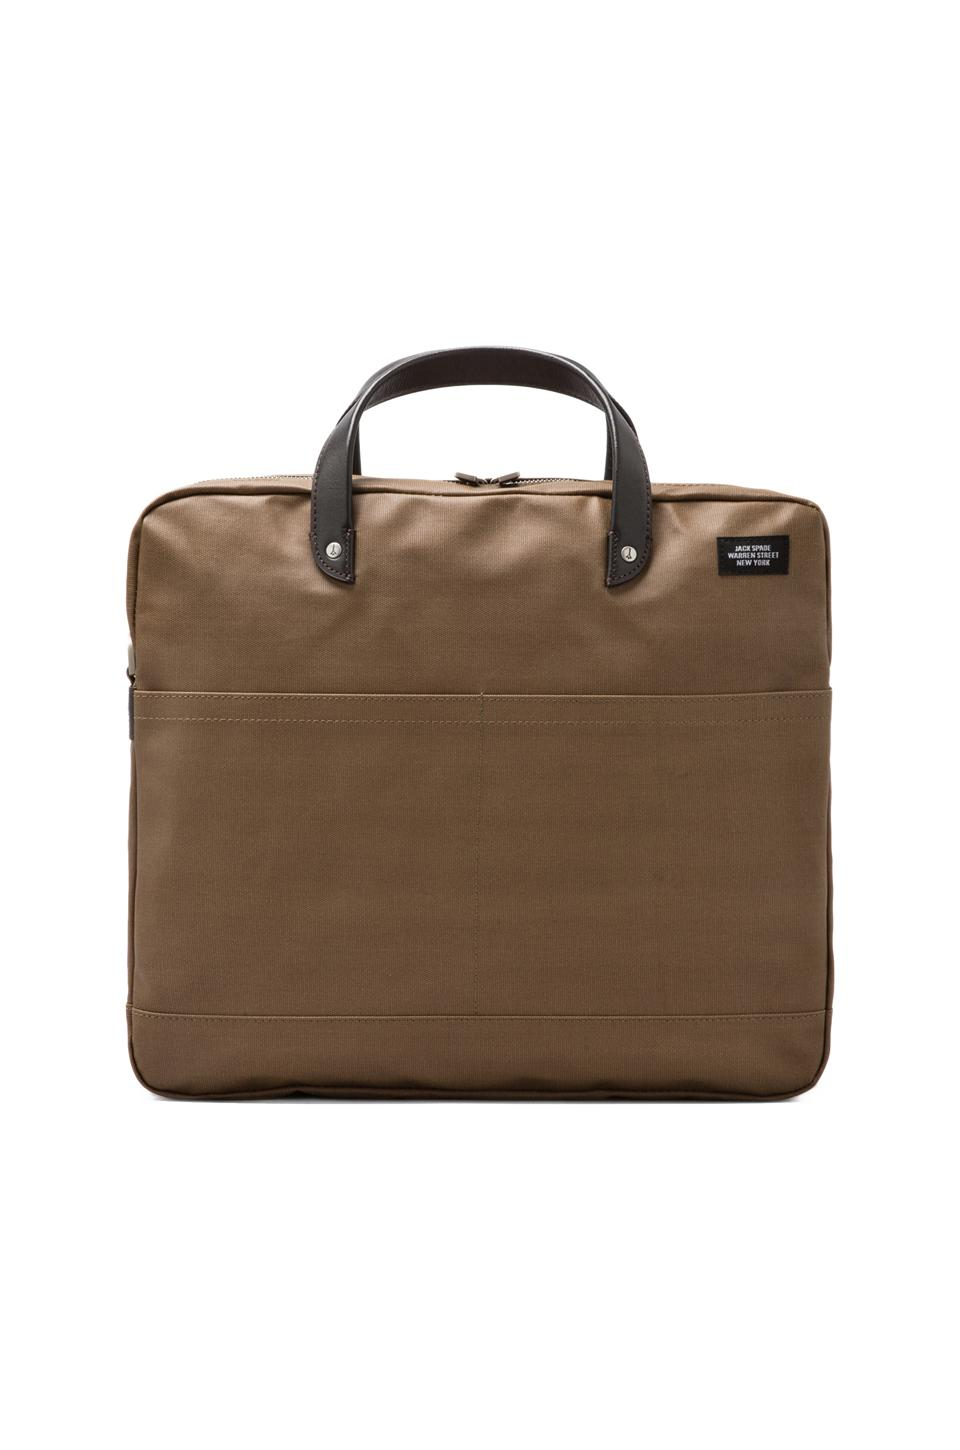 Jack Spade Coated Canvas Carryall in Khaki